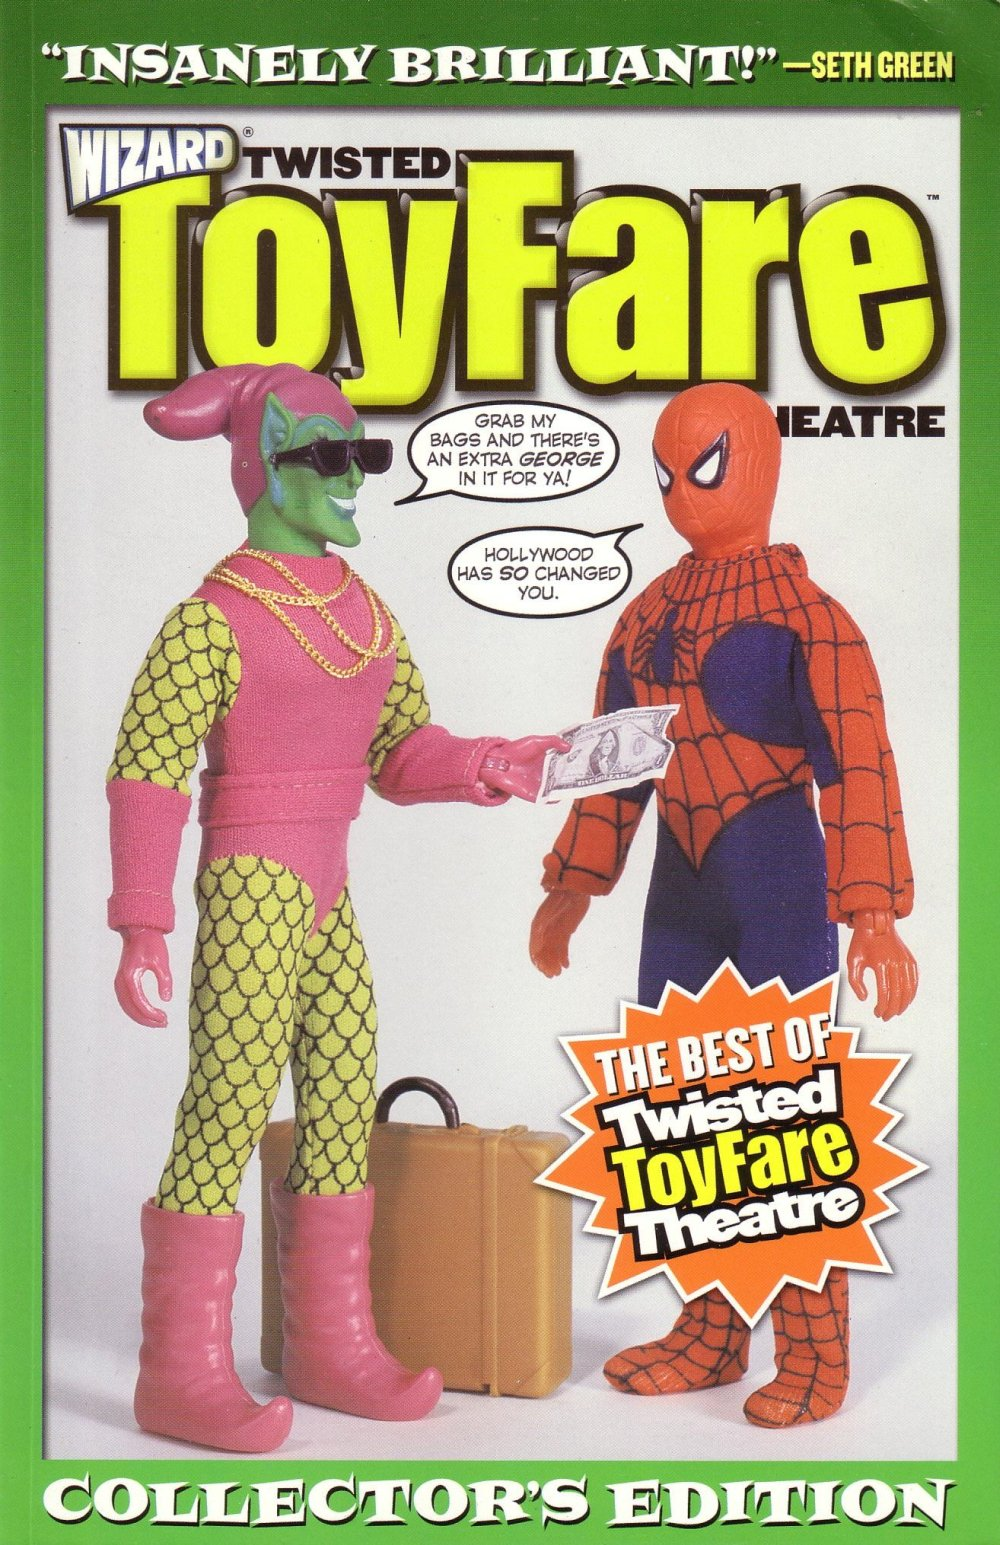 Wizard Twisted Toyfare Theatre [Wizard] V1 0002.jpg